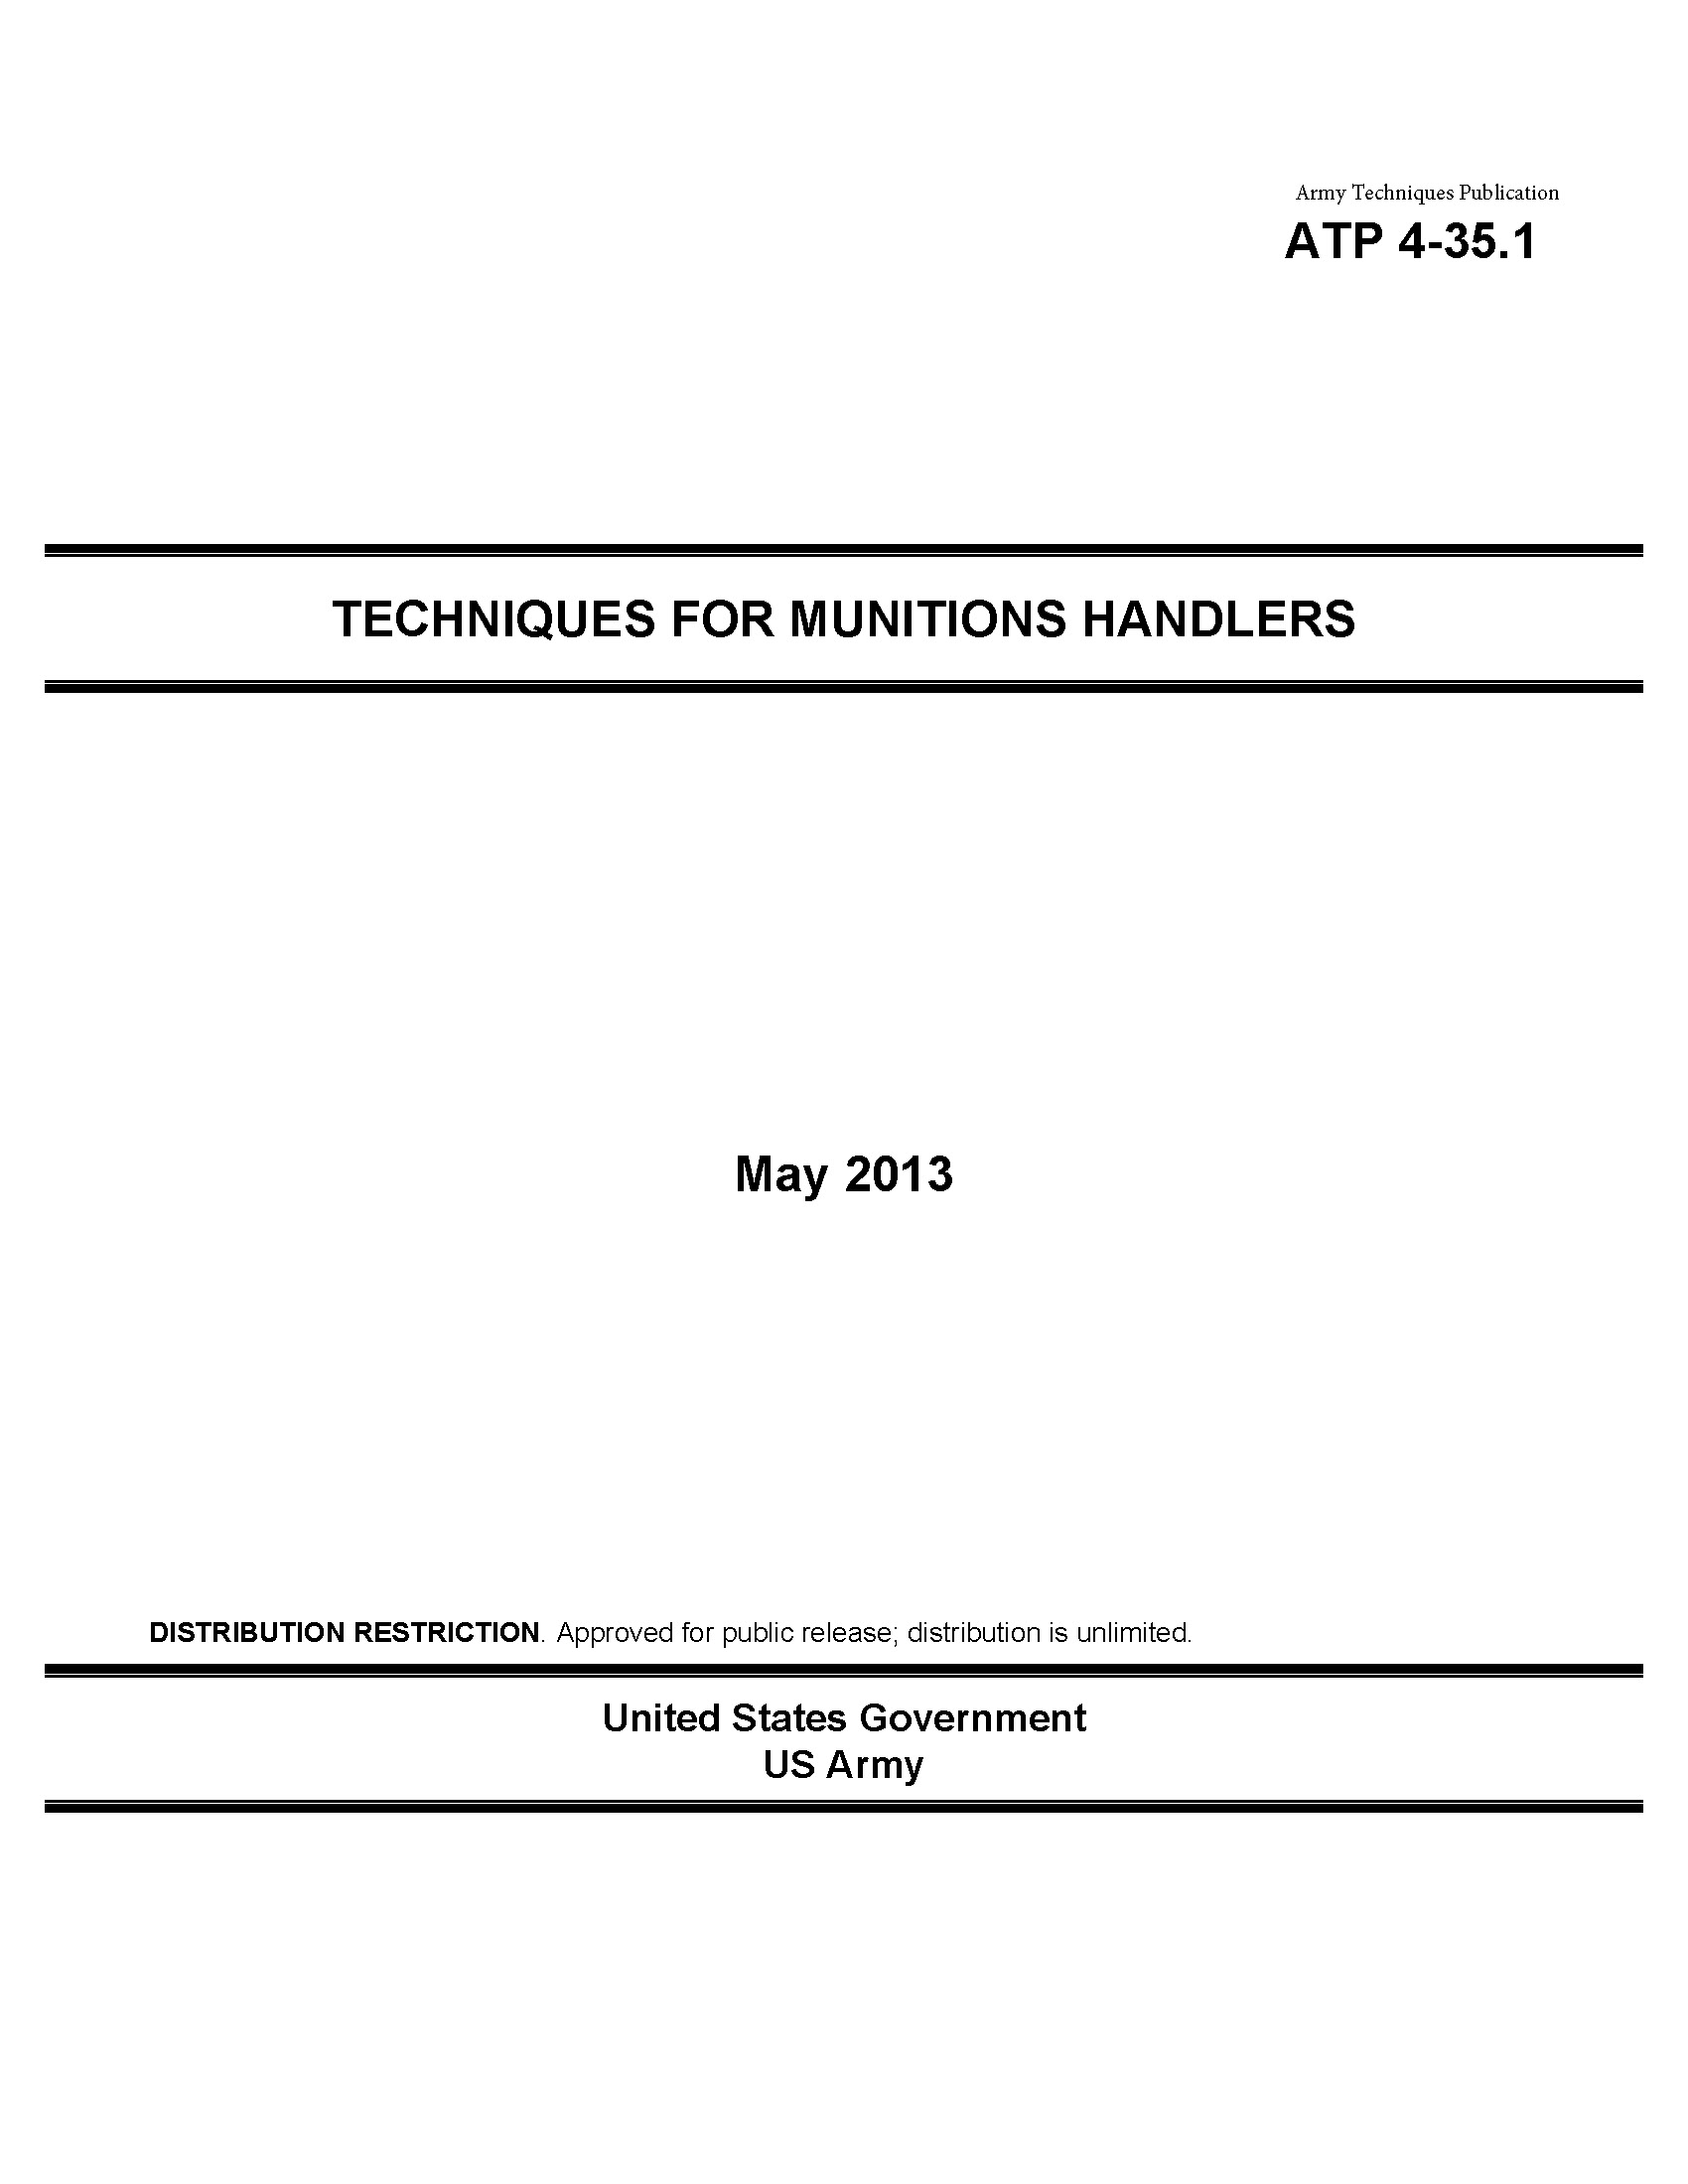 Army Techniques Publication ATP 4-35.1 Techniques for Munitions Handlers  May 2013